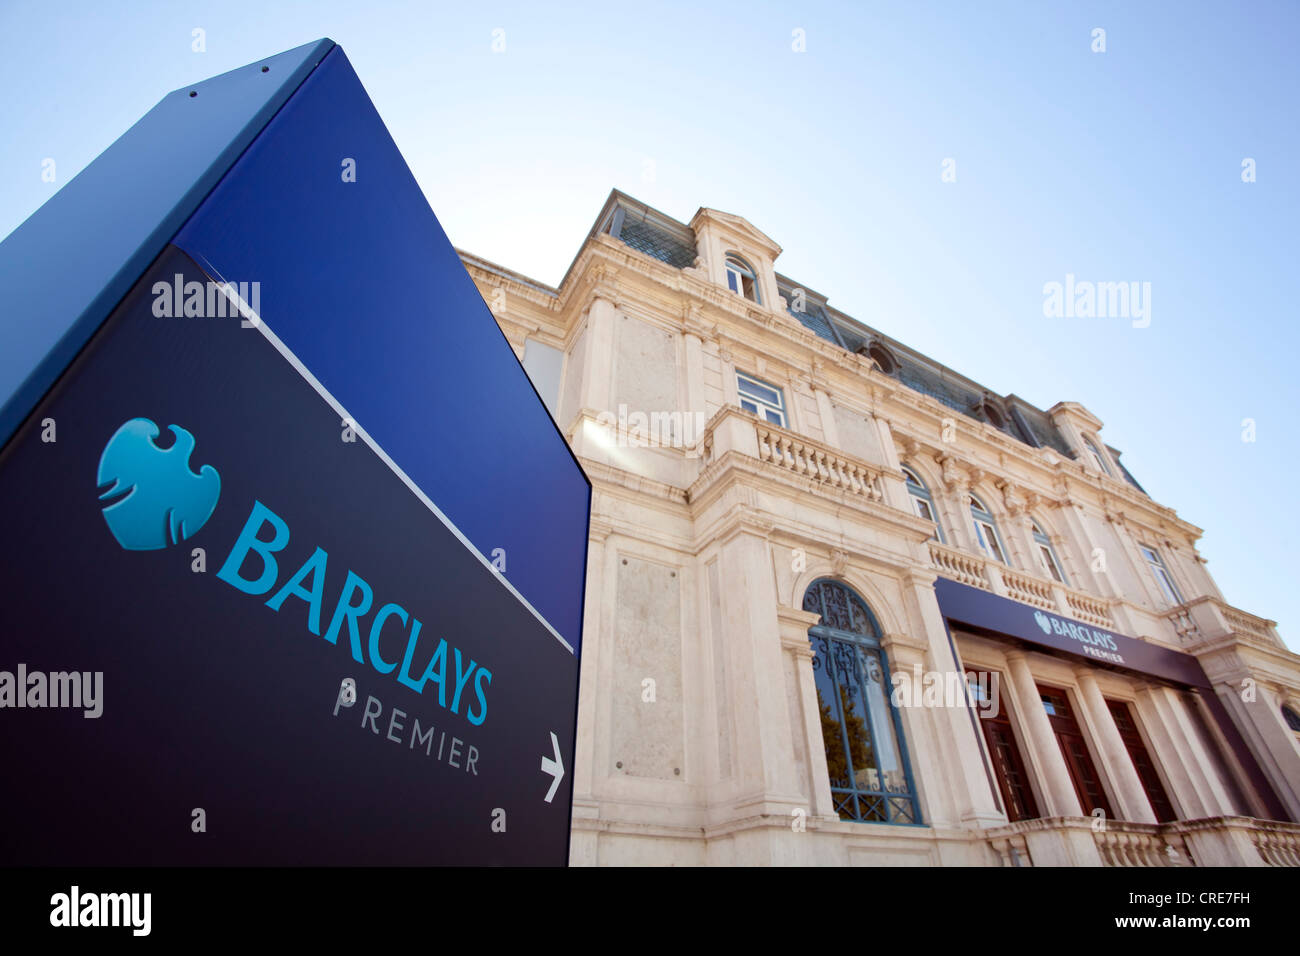 Branch of Barclays Premier bank in Palacio Sottomayor, Lisbon, Portugal, Europe - Stock Image